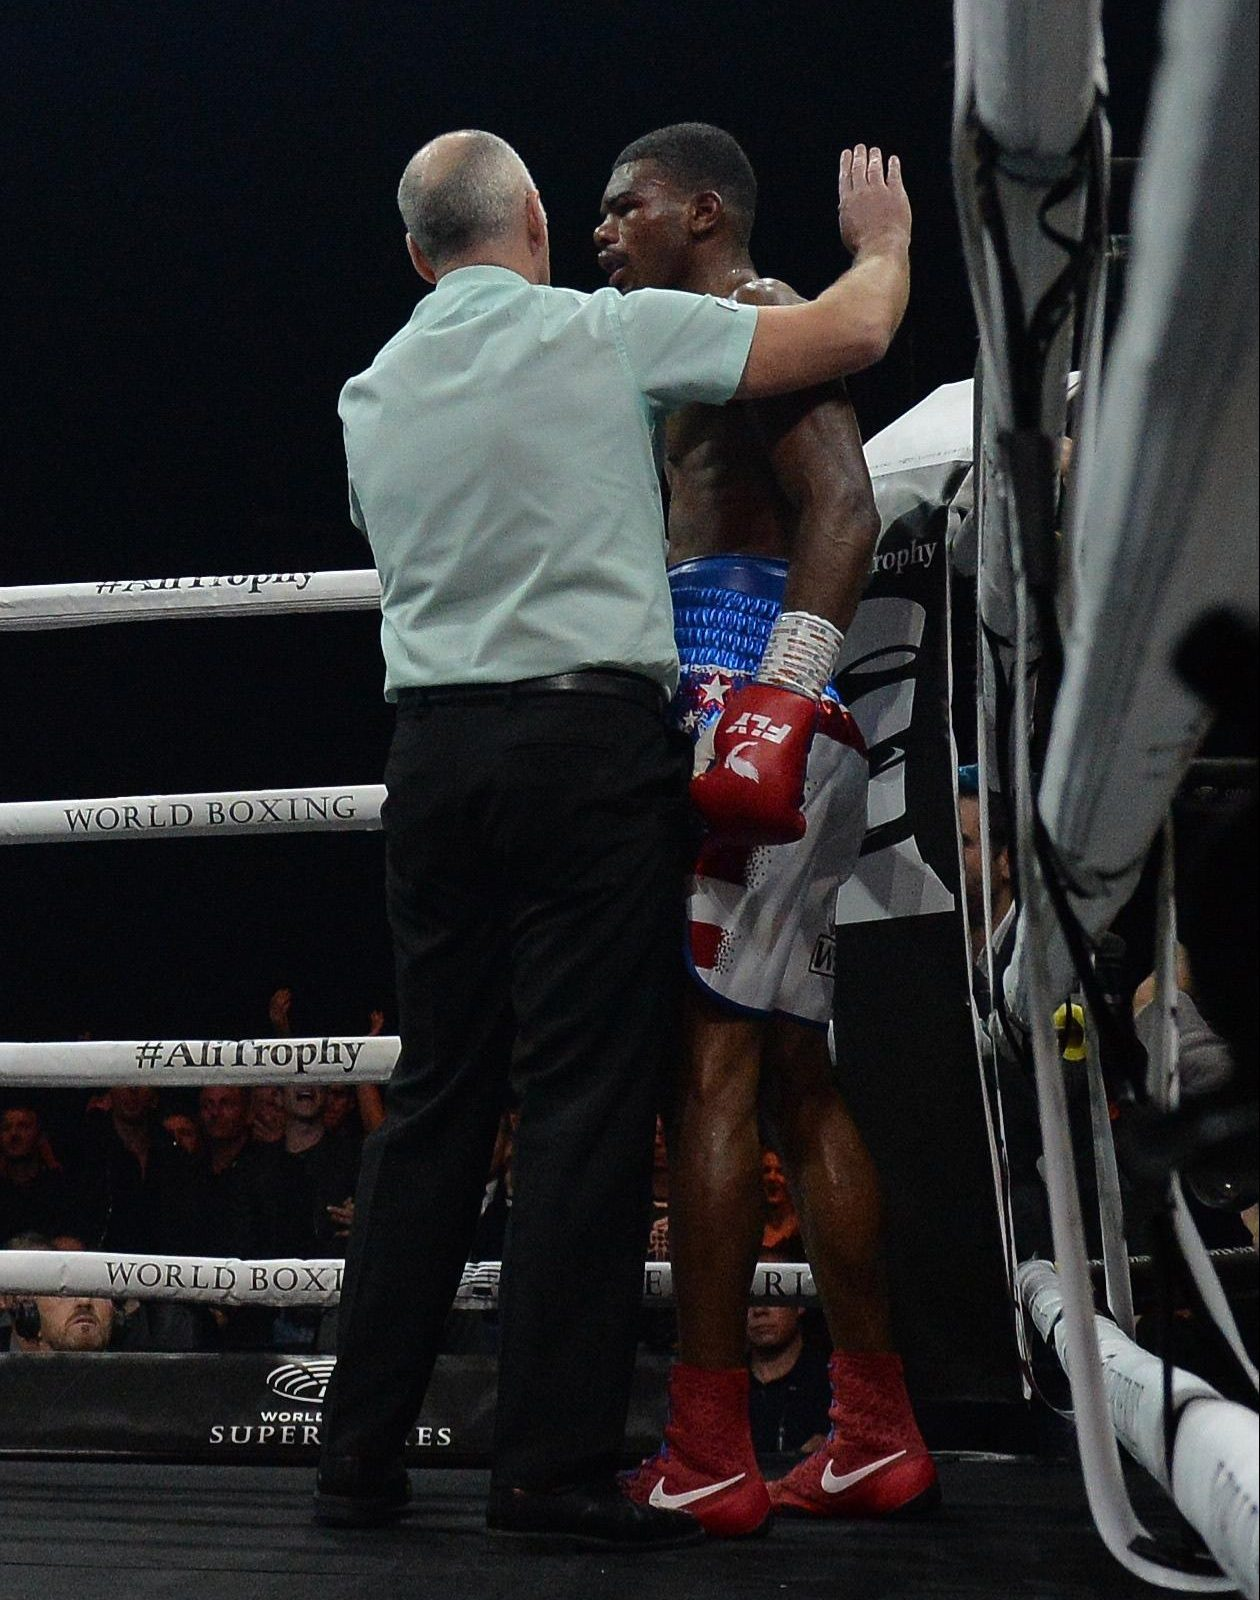 The referee had seen enough and stopped the fight in the seventh round